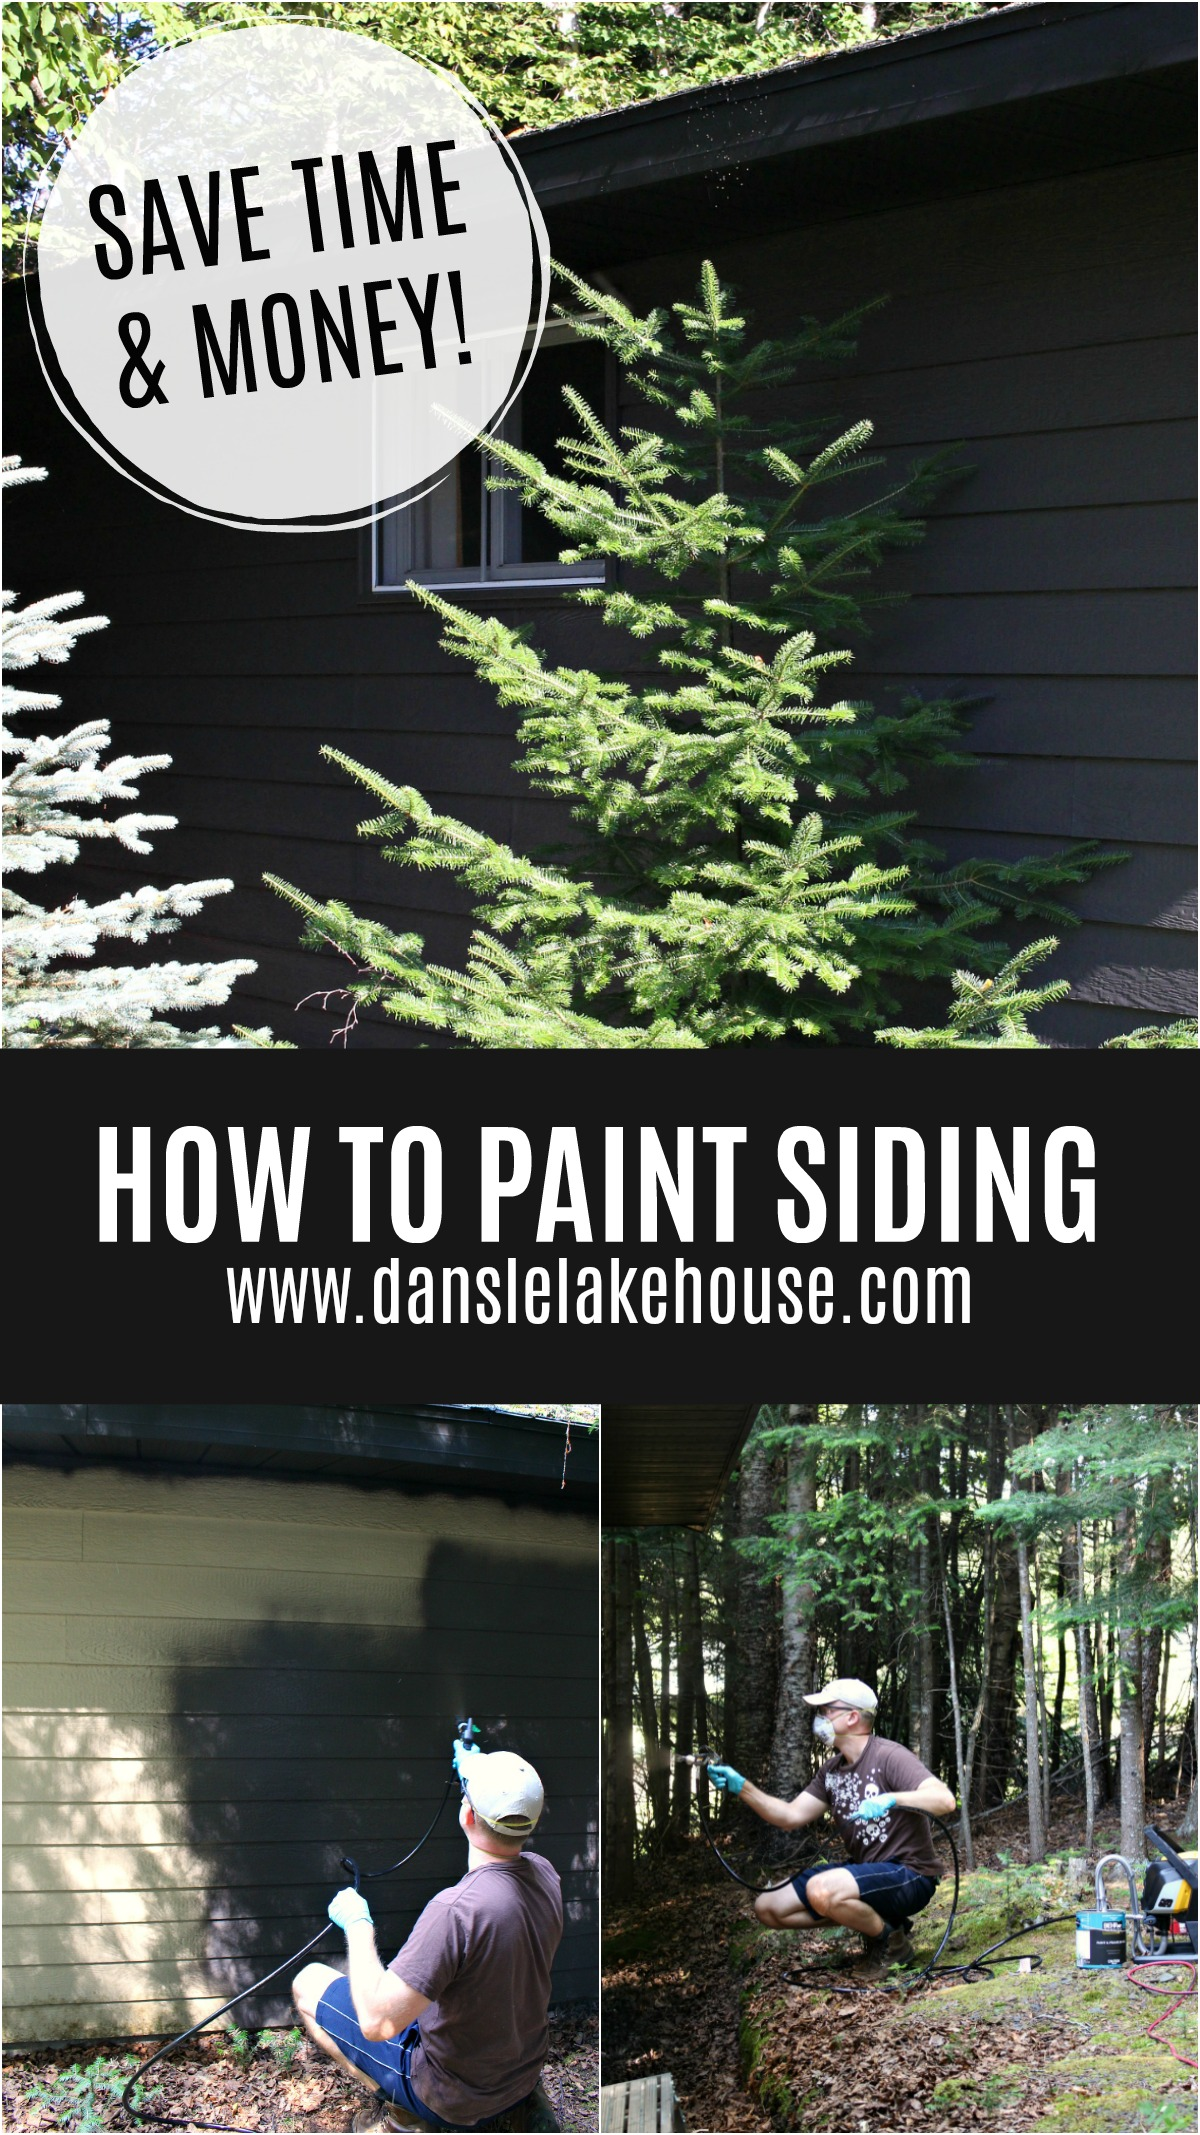 How to Paint Siding